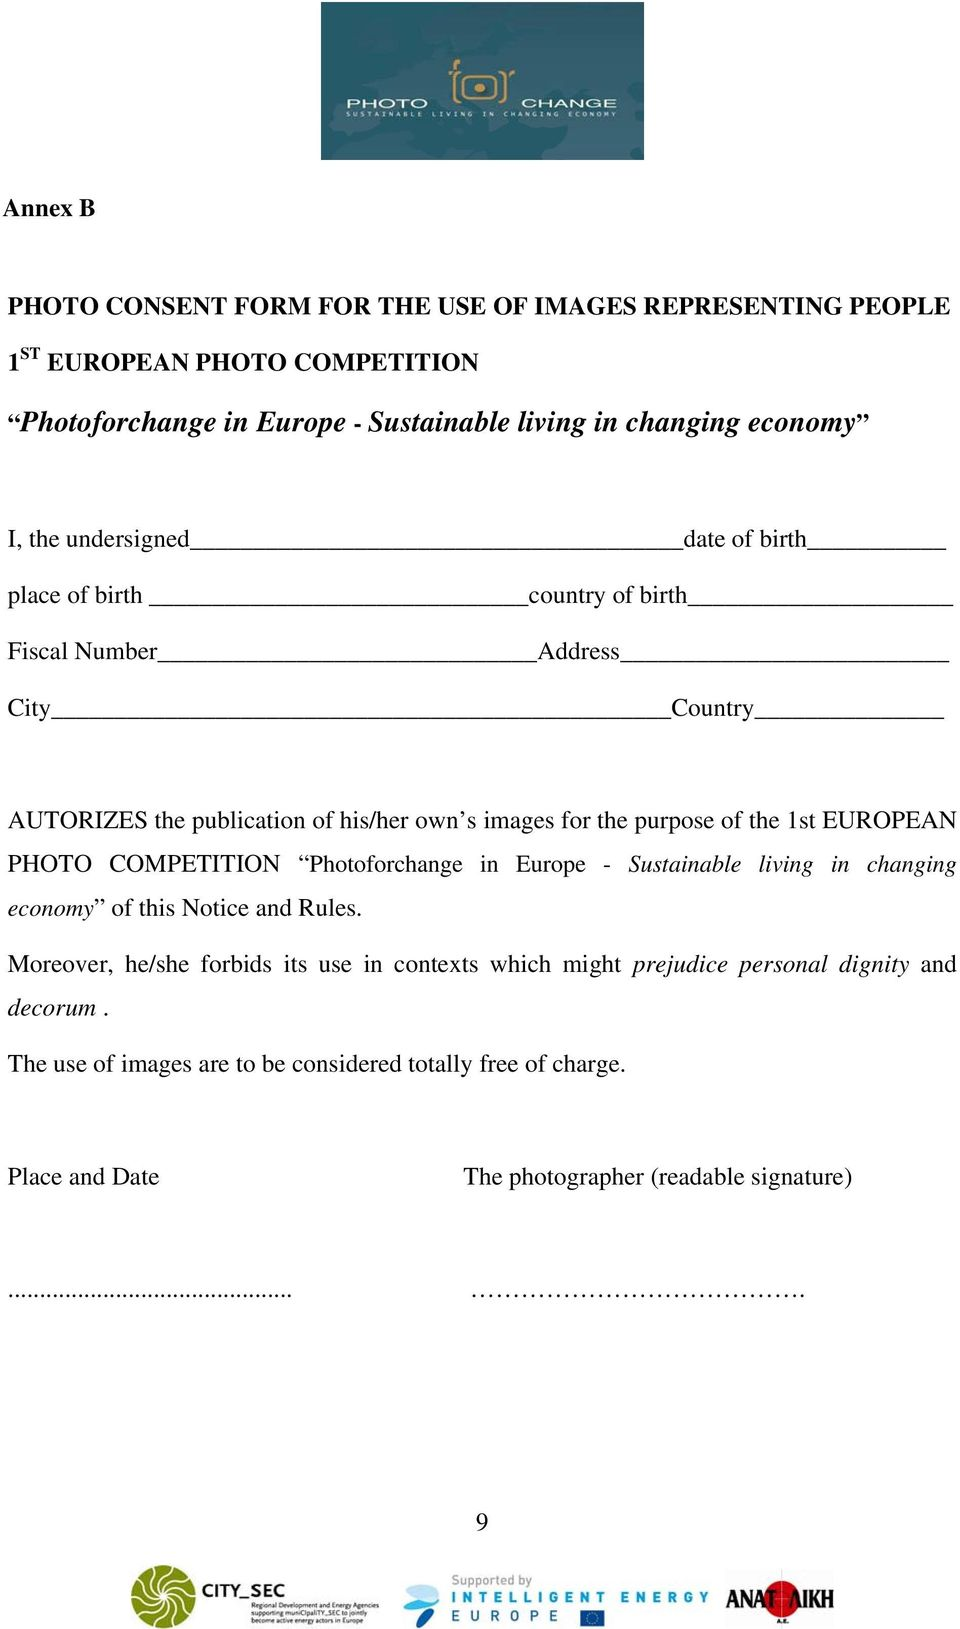 1st EUROPEAN PHOTO COMPETITION Photoforchange in Europe - Sustainable living in changing economy of this Notice and Rules.